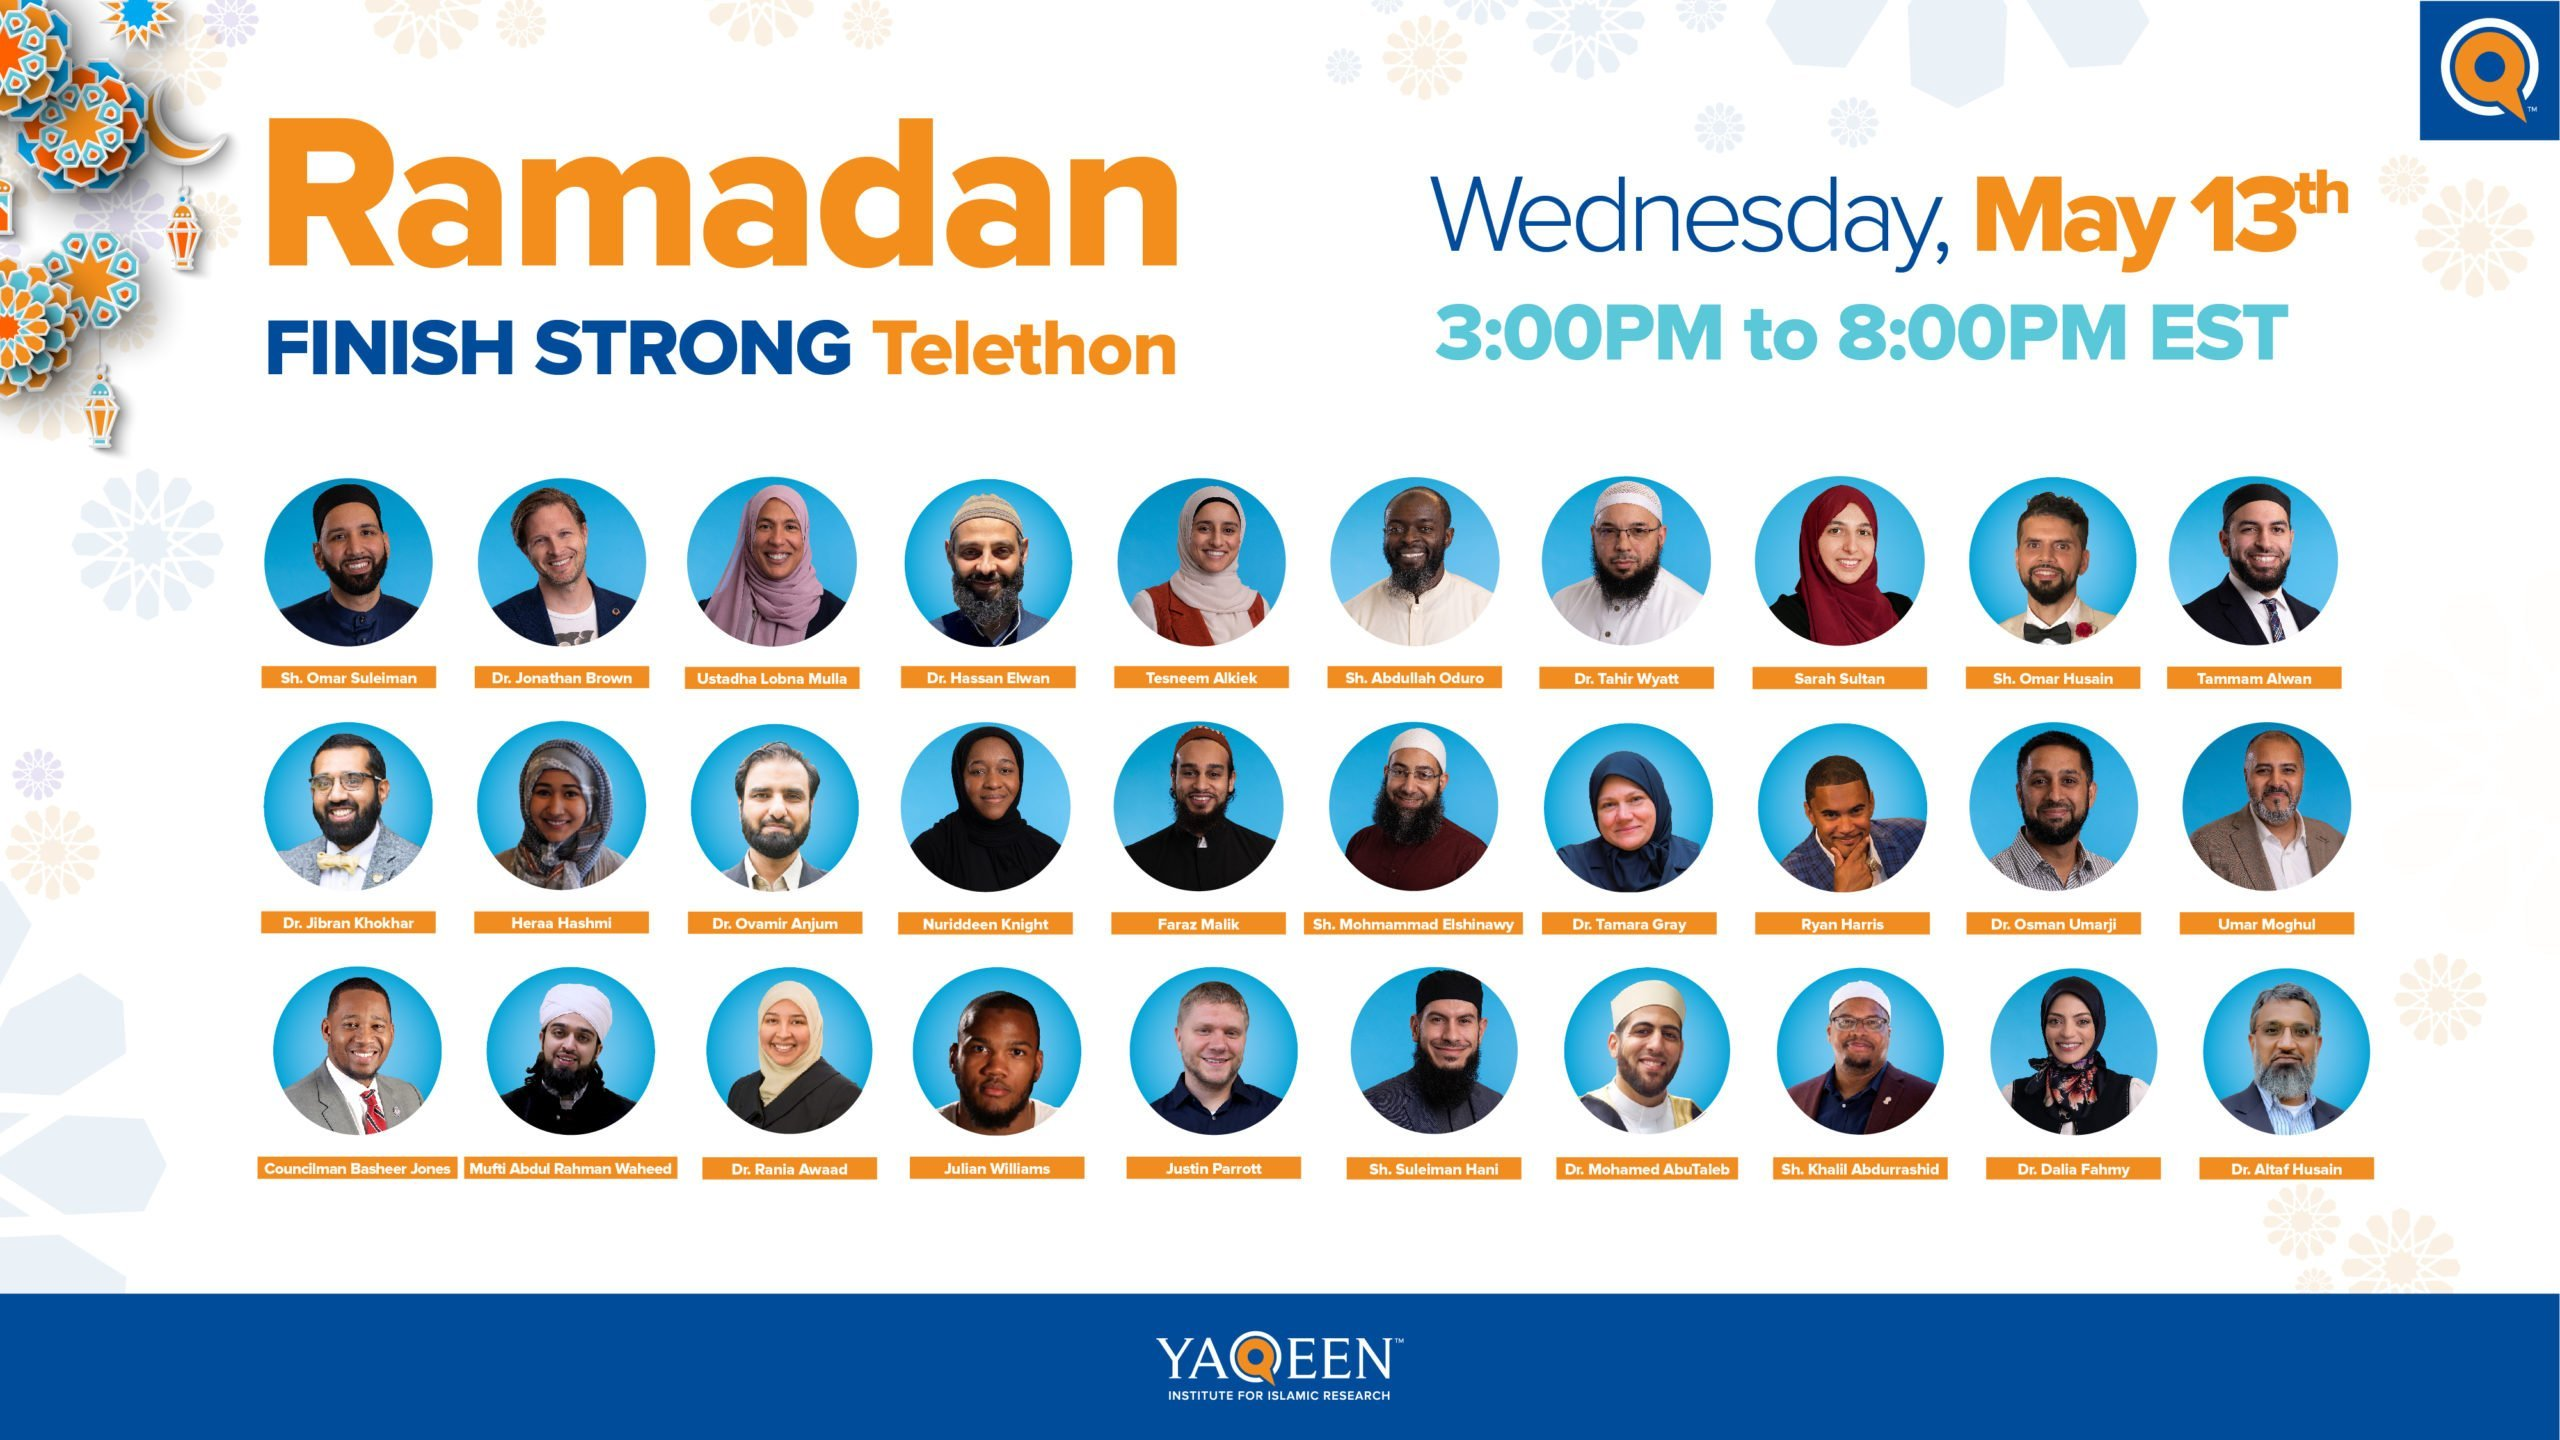 Finish Ramadan Strong with Yaqeen